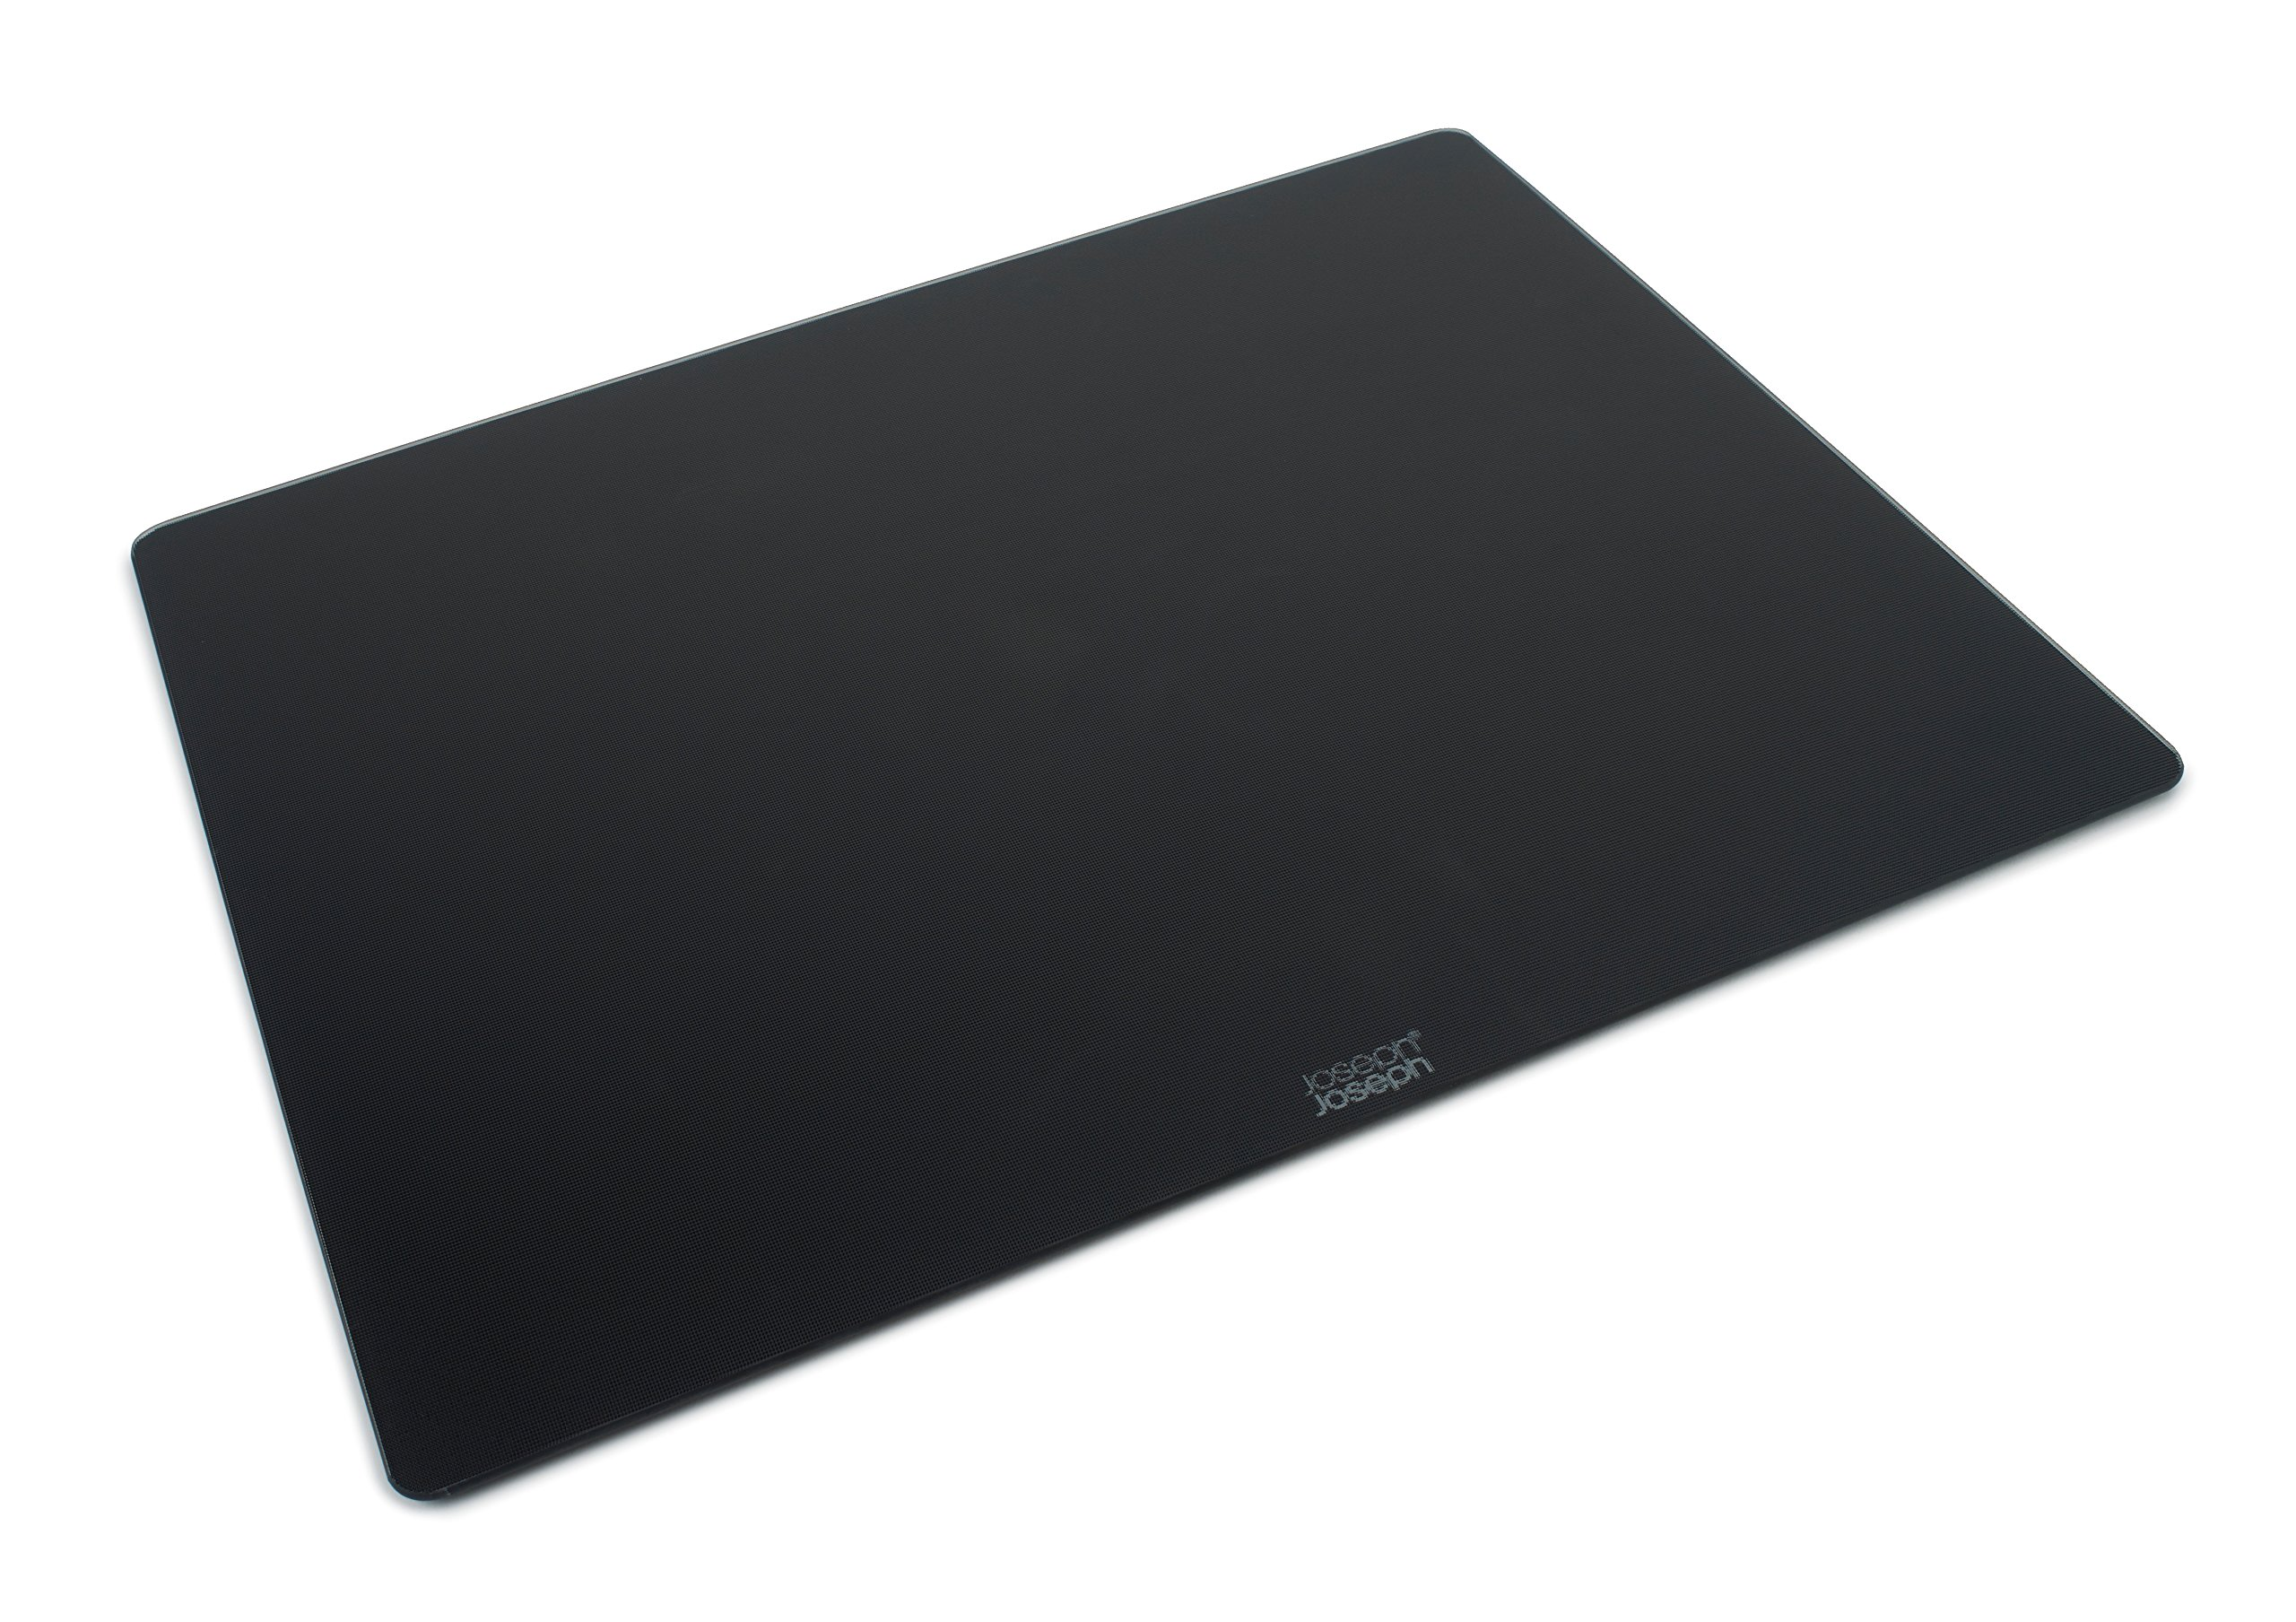 Joseph Joseph 90122 Worktop Saver Glass Cutting Board and Serving Board Heat Resistant, 15.8-in x 19.7-in, Black